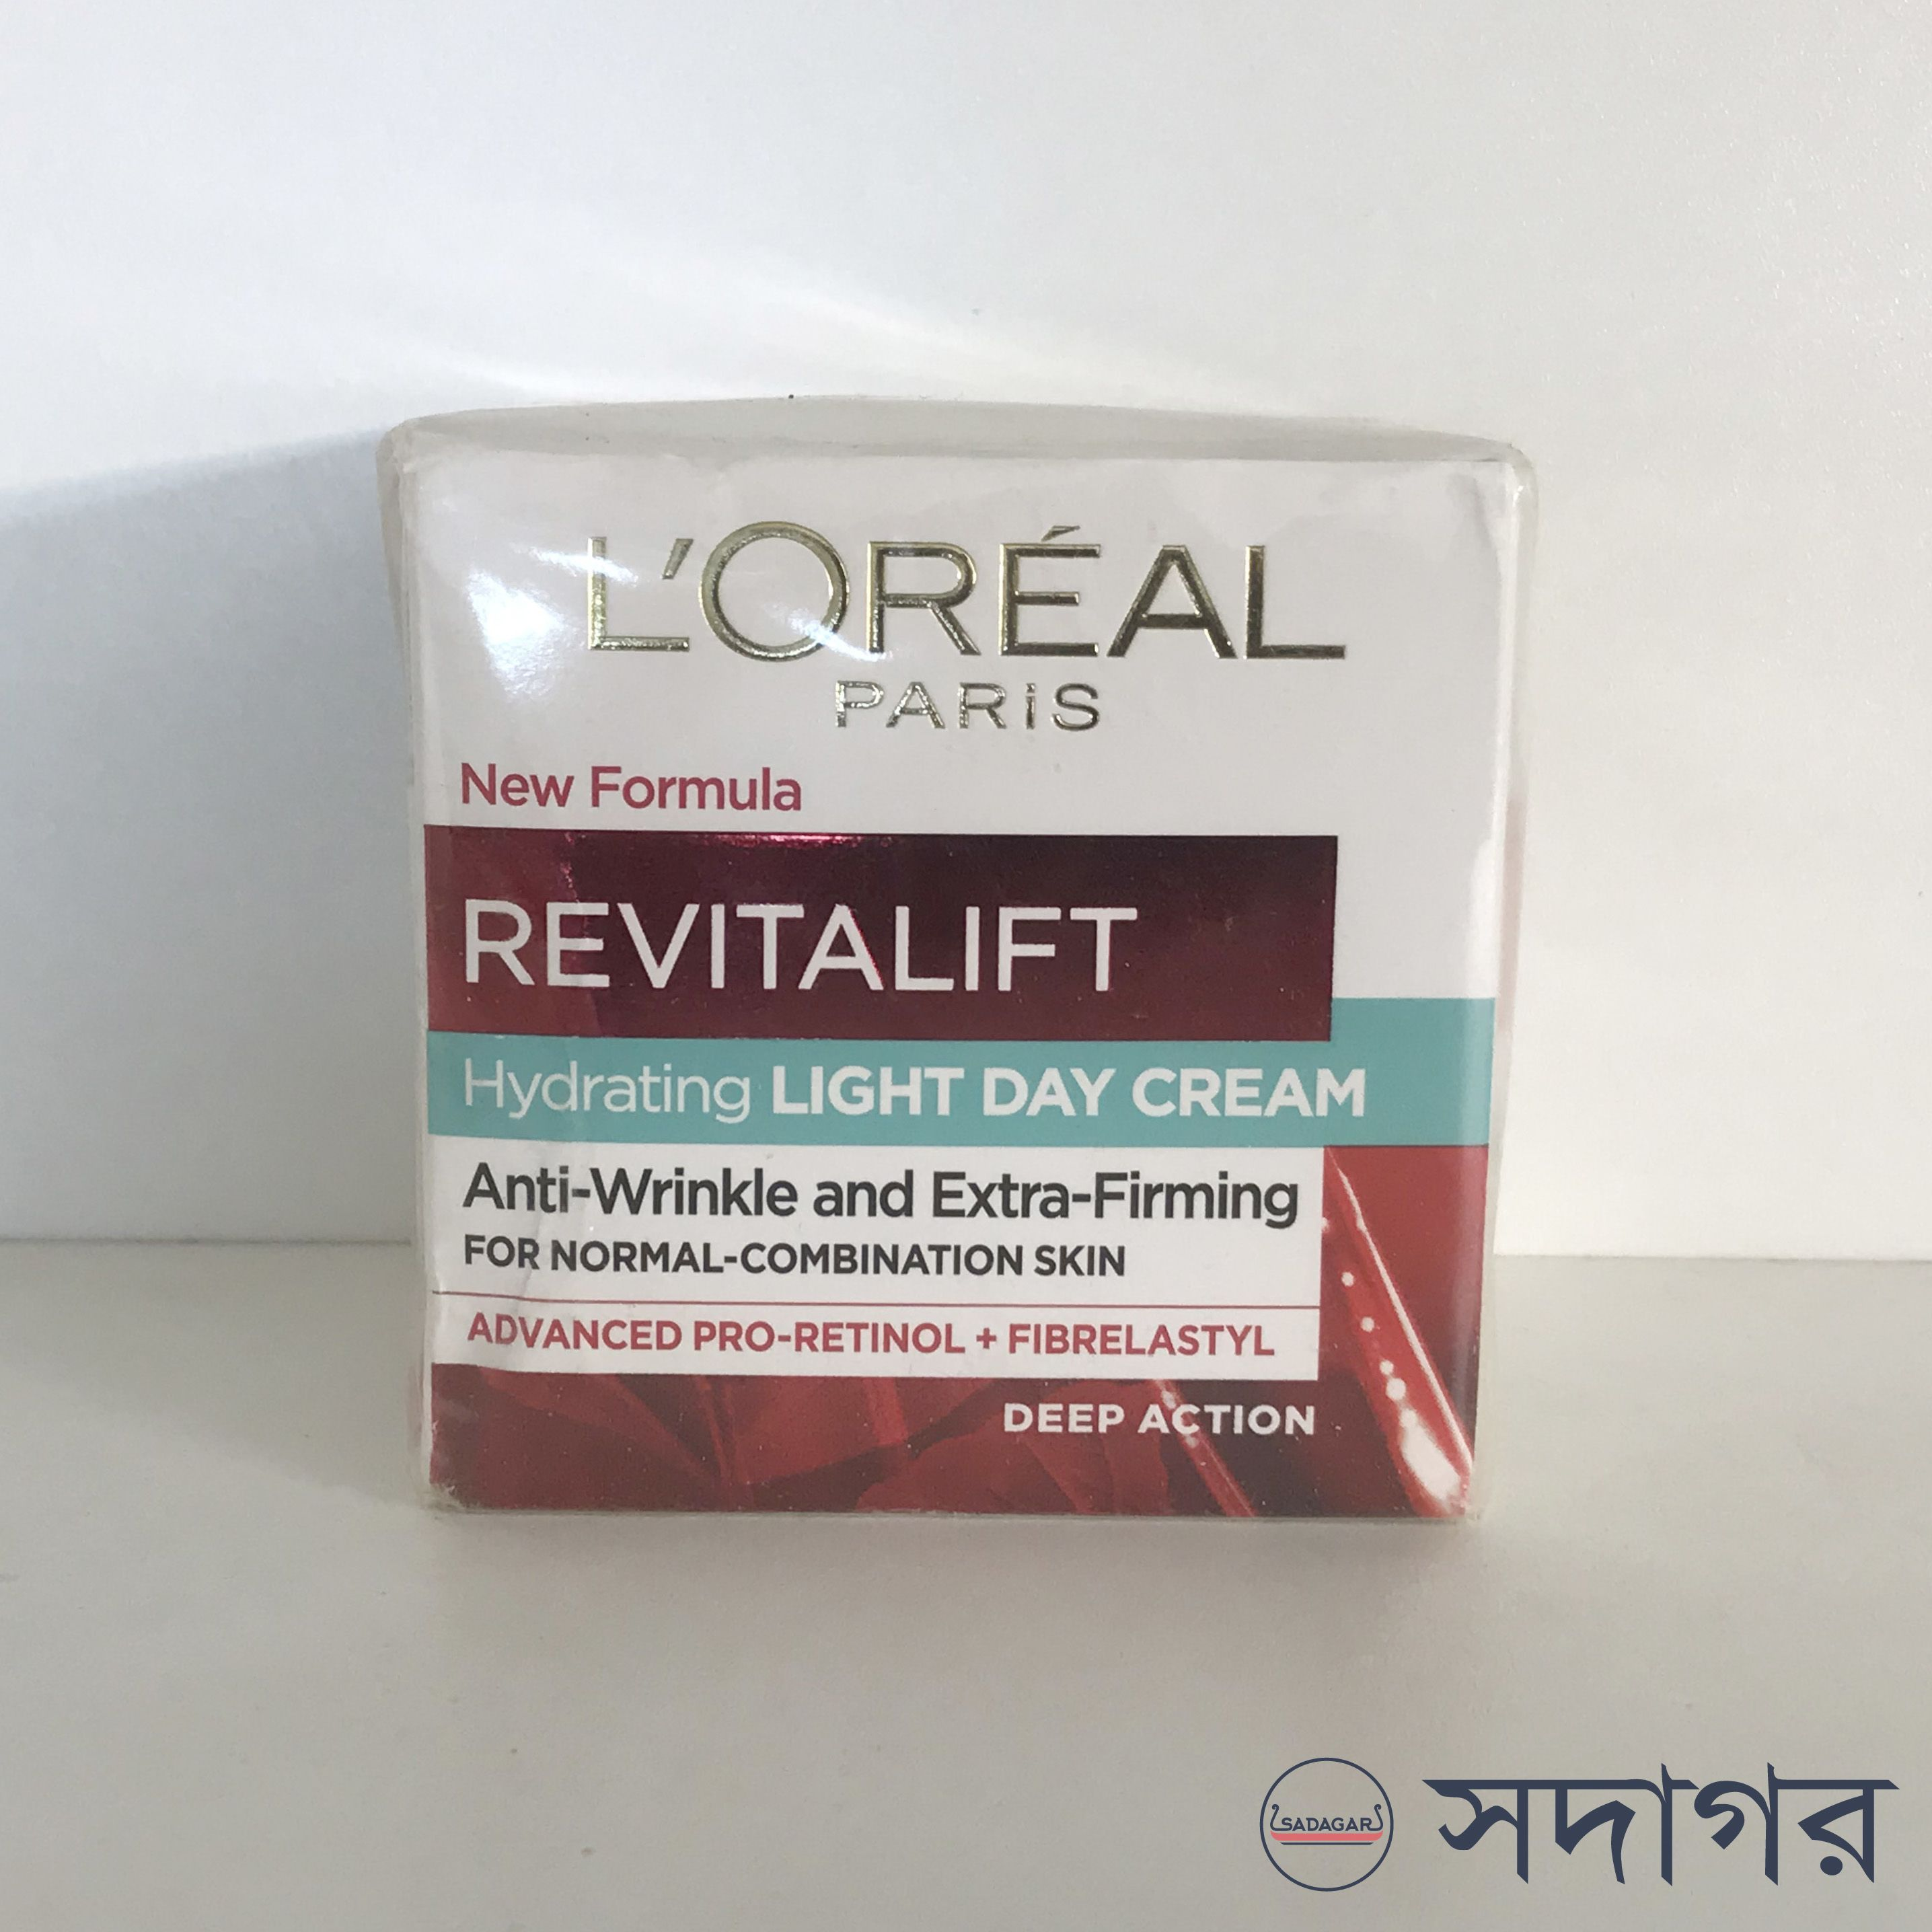 Loreal Paris New Formula Revitalift Hydrating Light Day Cream 50ml